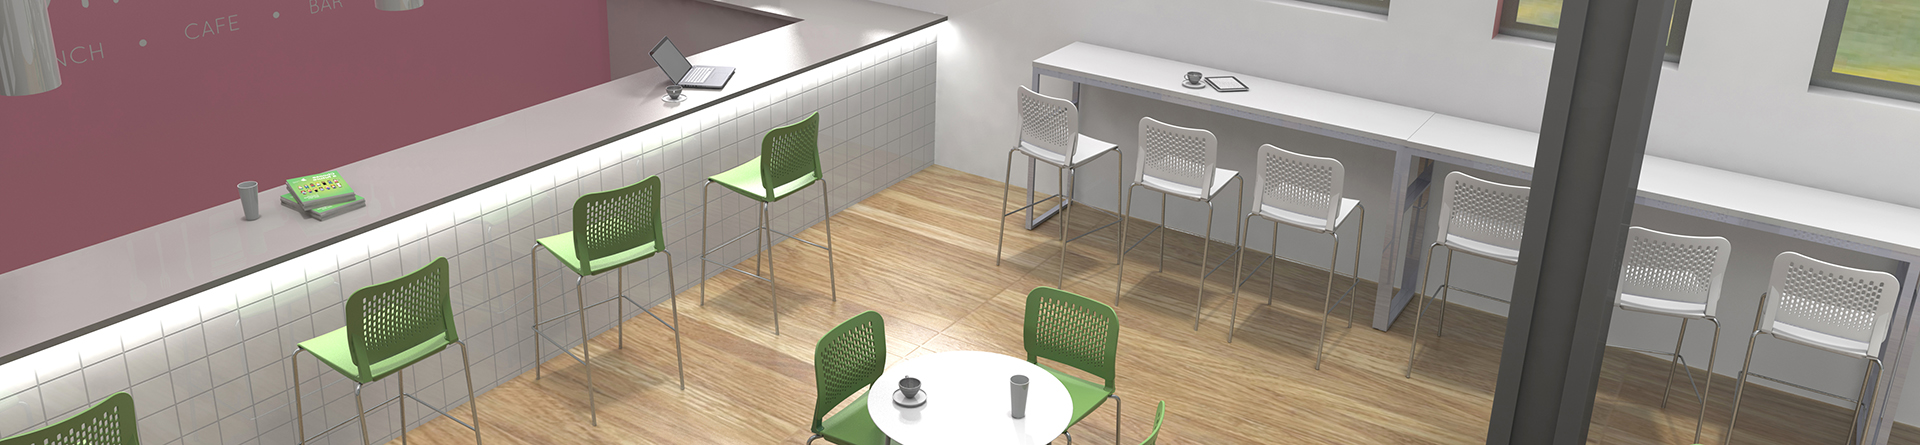 Breakout, Cafe & Bistro Furniture